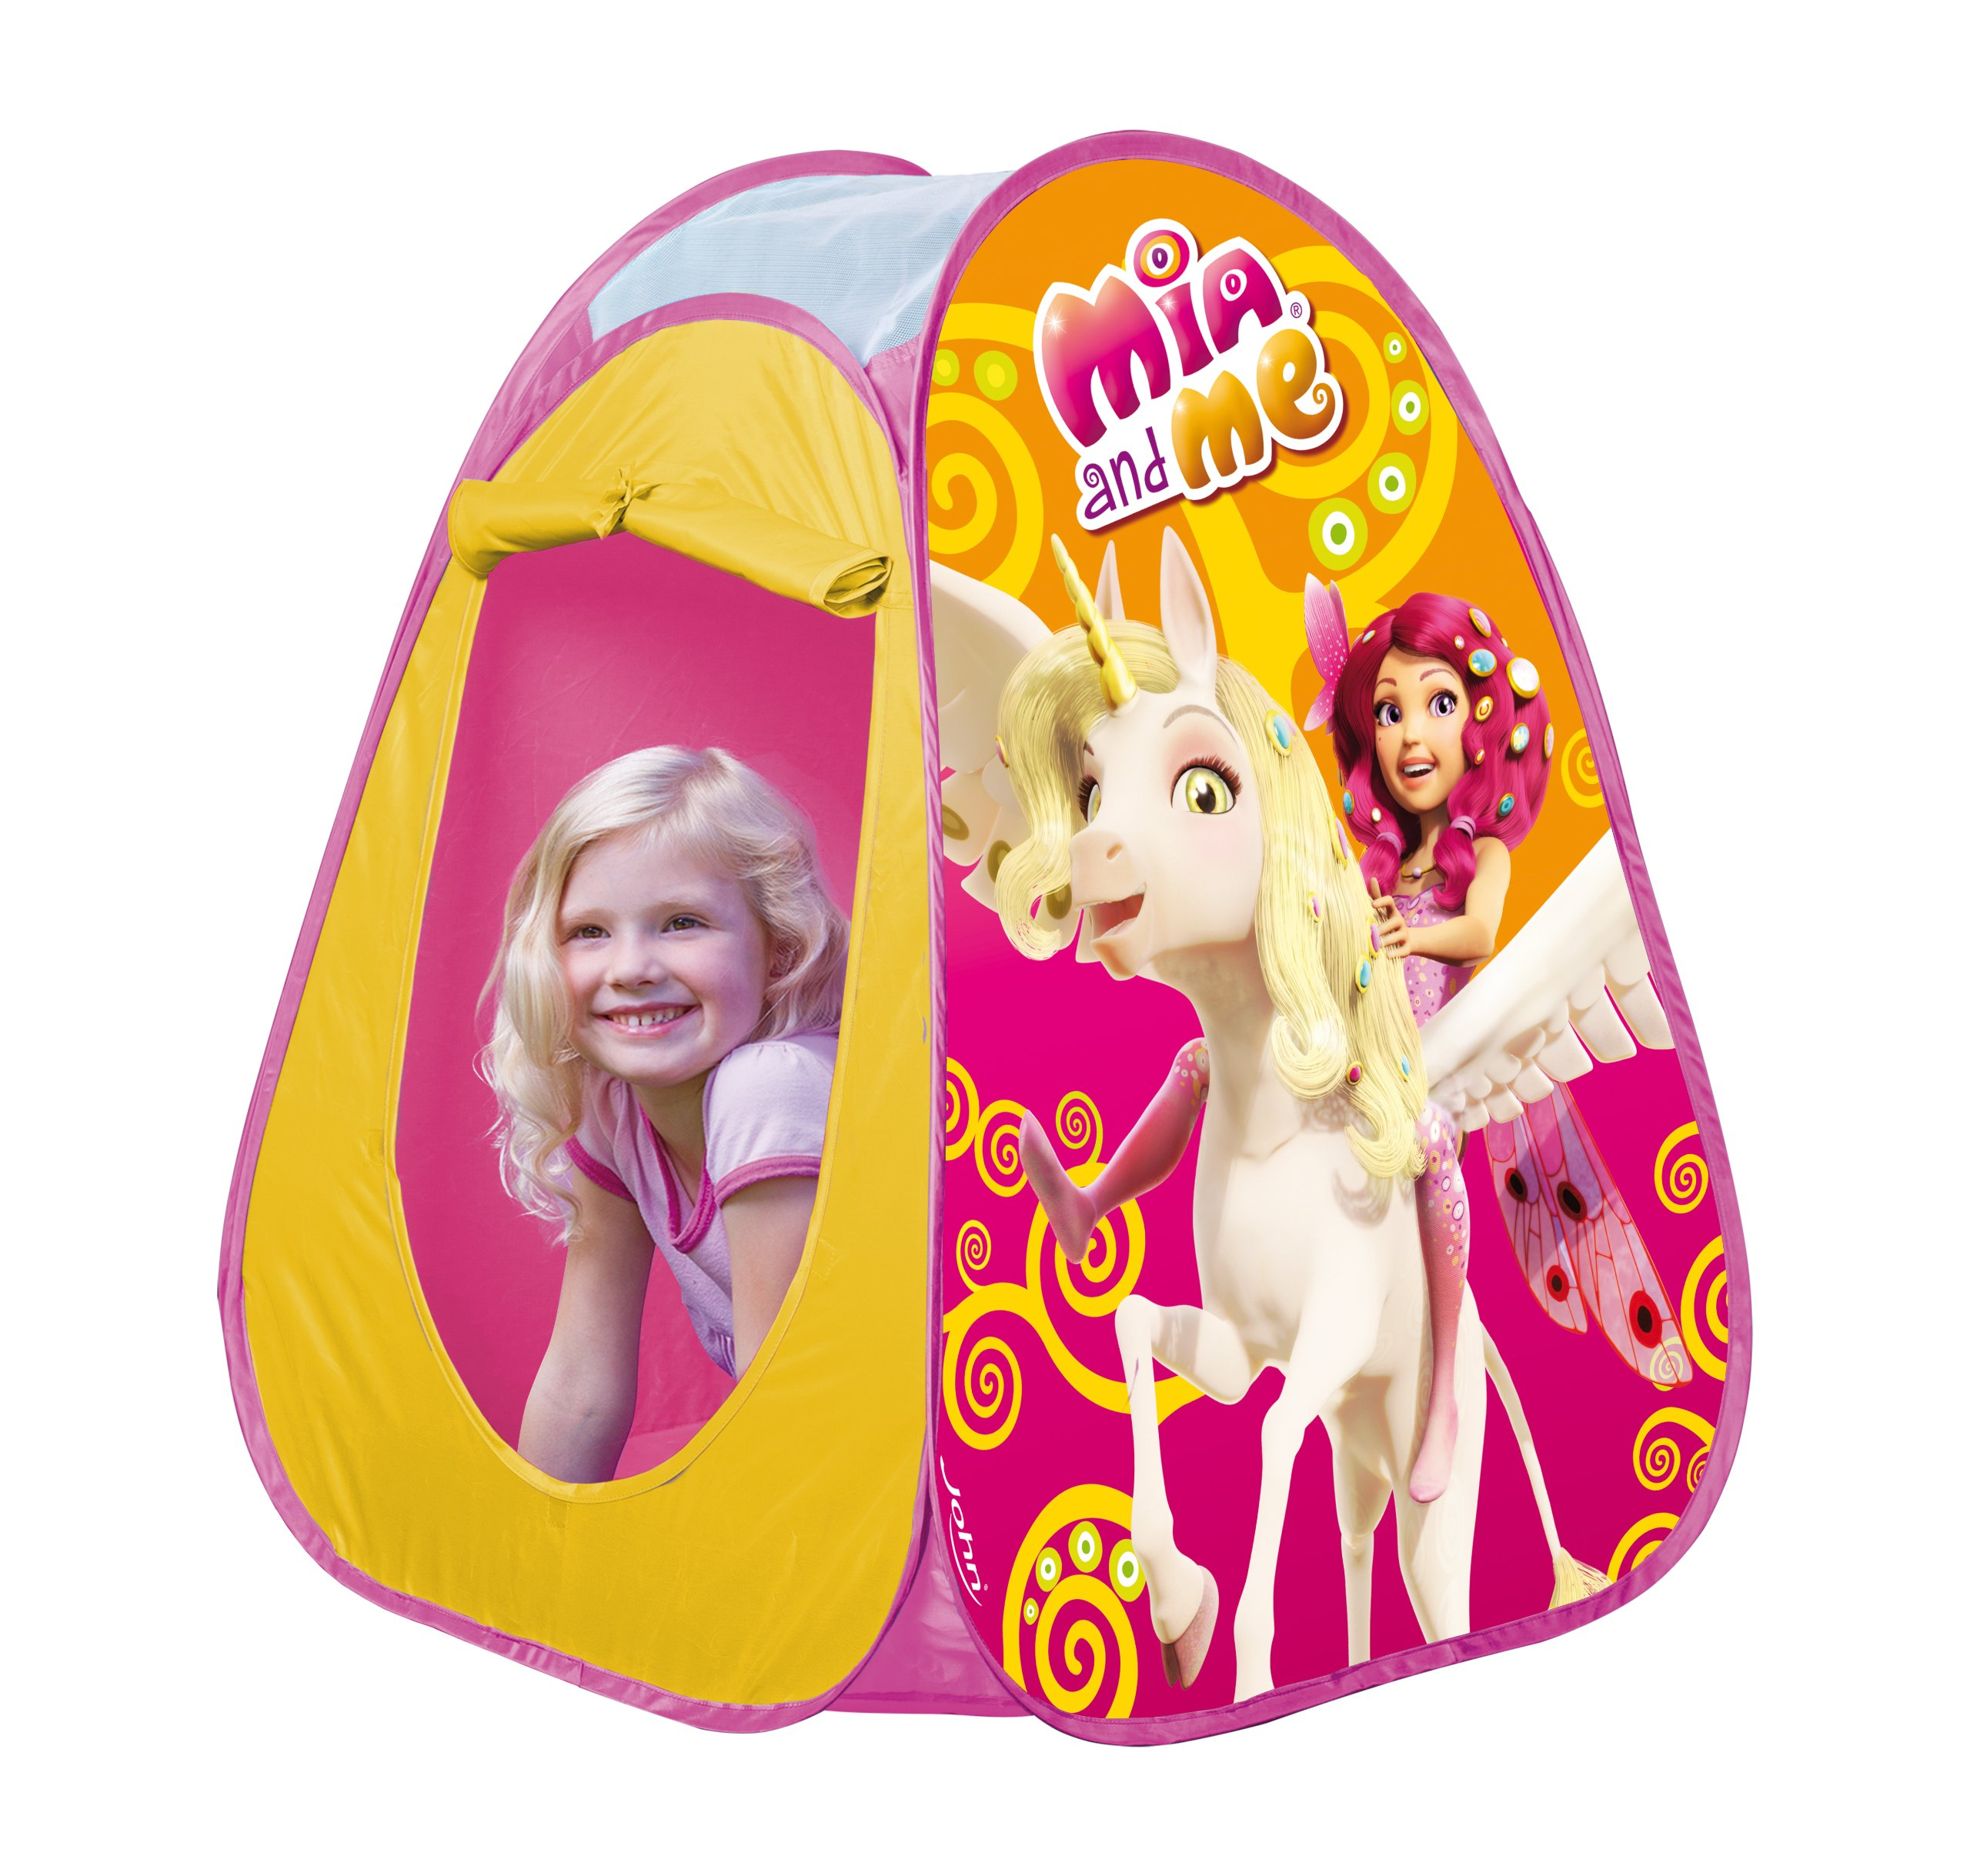 John Gmbh - 75544 - Tente De Jardin - Pop Up Play - Mia And Me product image